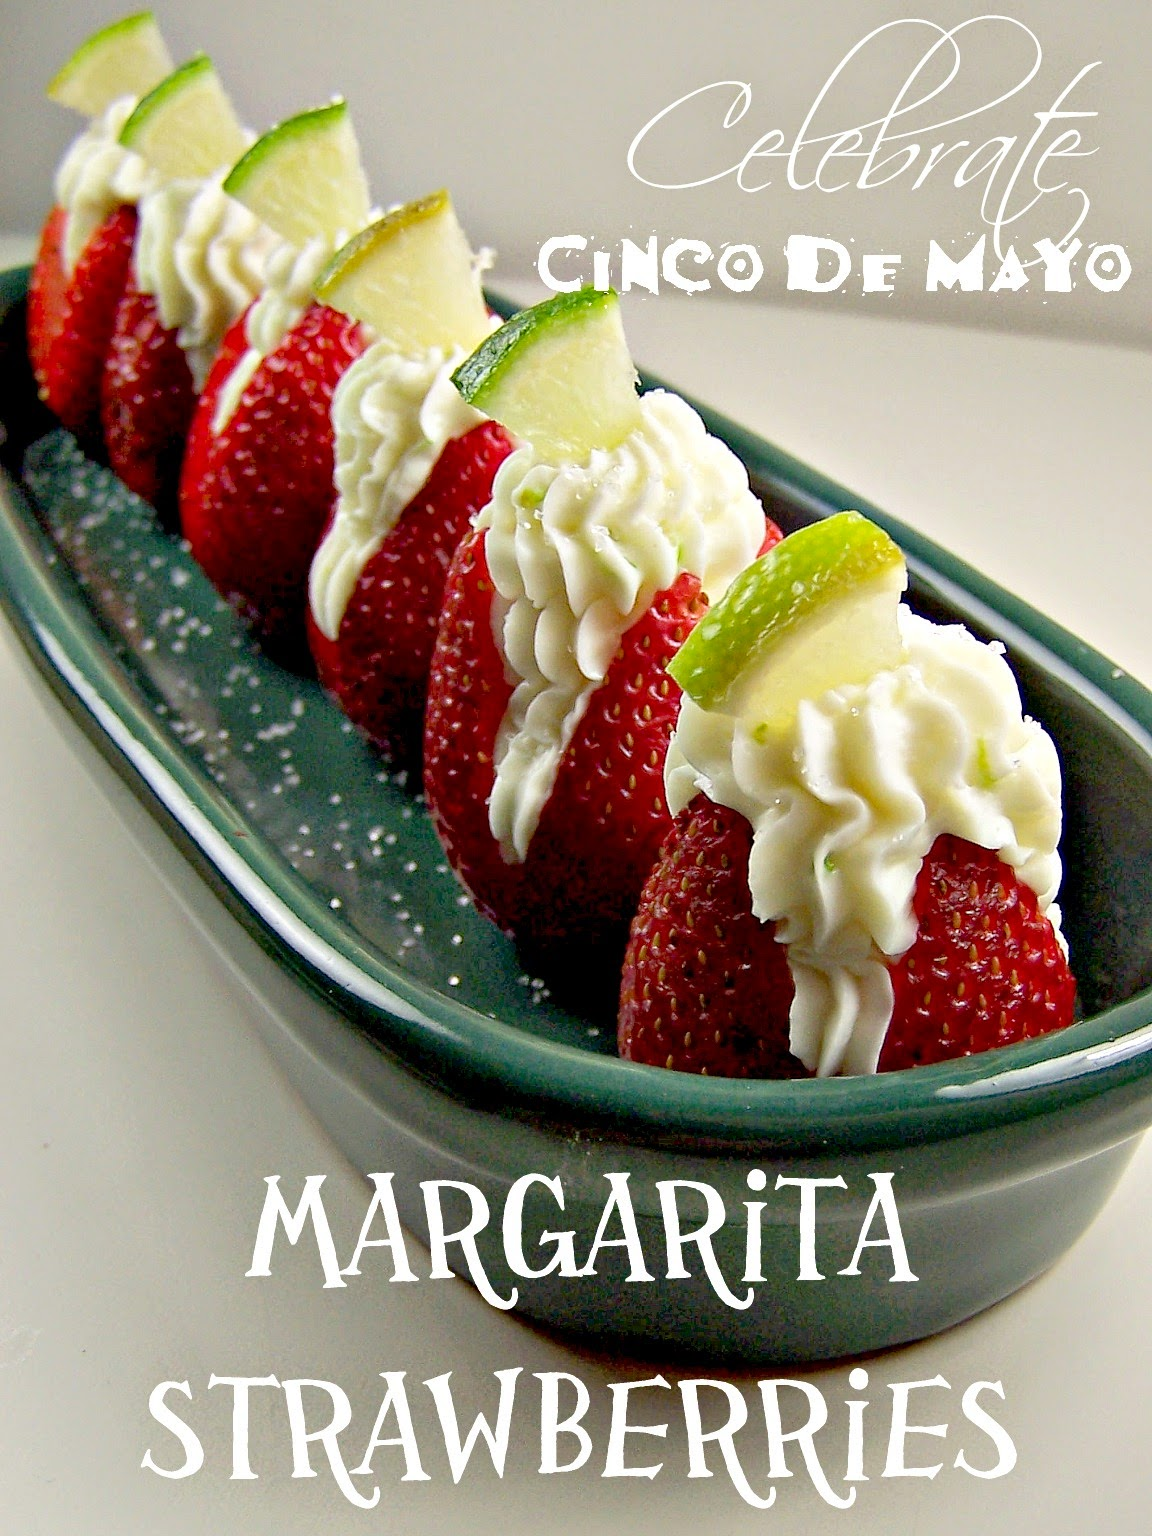 Margarita Strawberries. Awesome Recipe from Olla-Podrina